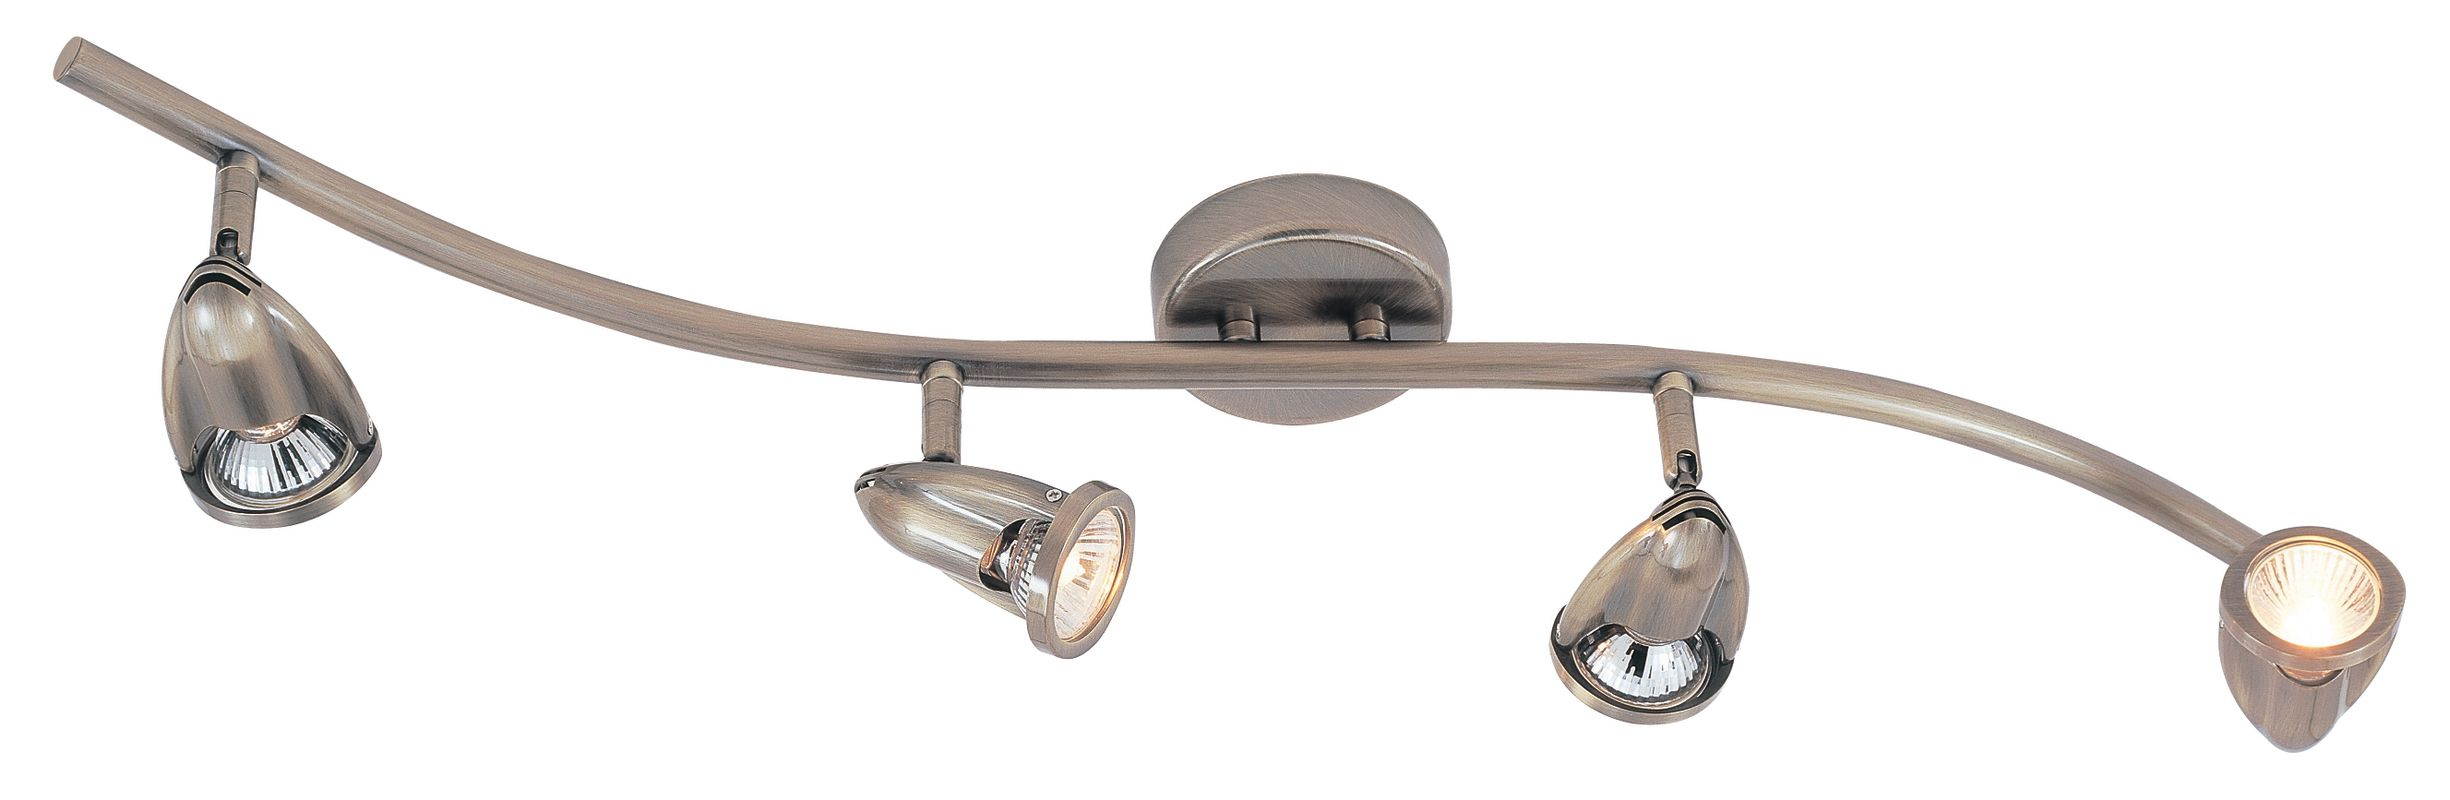 Trans Globe Lighting W-466 BN Brushed Nickel Modern Track Four Light Wave Track Light from the Modern Track Collection